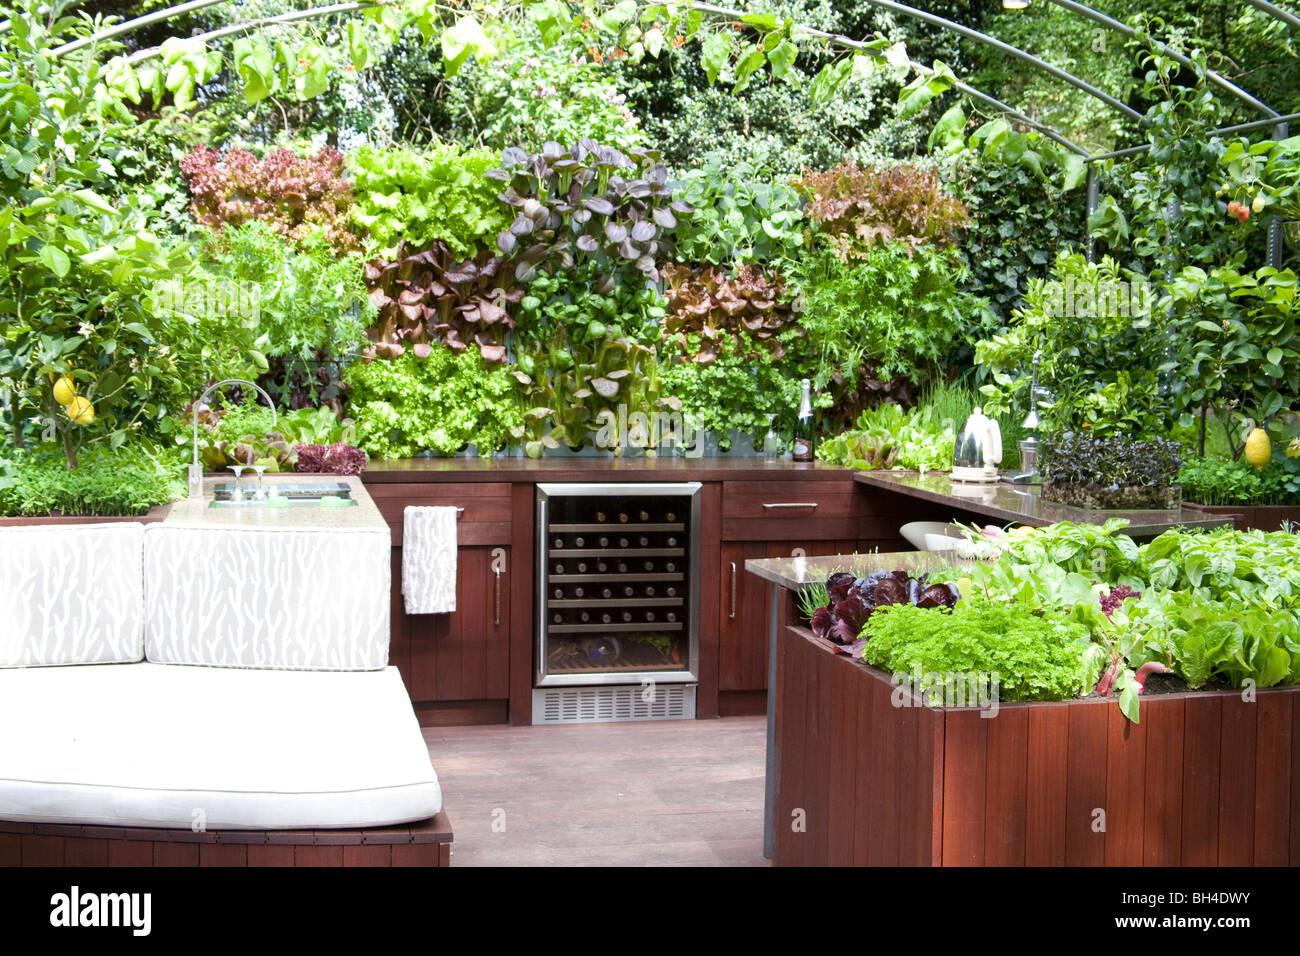 RHS Chelsea Flower Show 2009 Outdoor kitchen Stock Photo: 27758247 ...